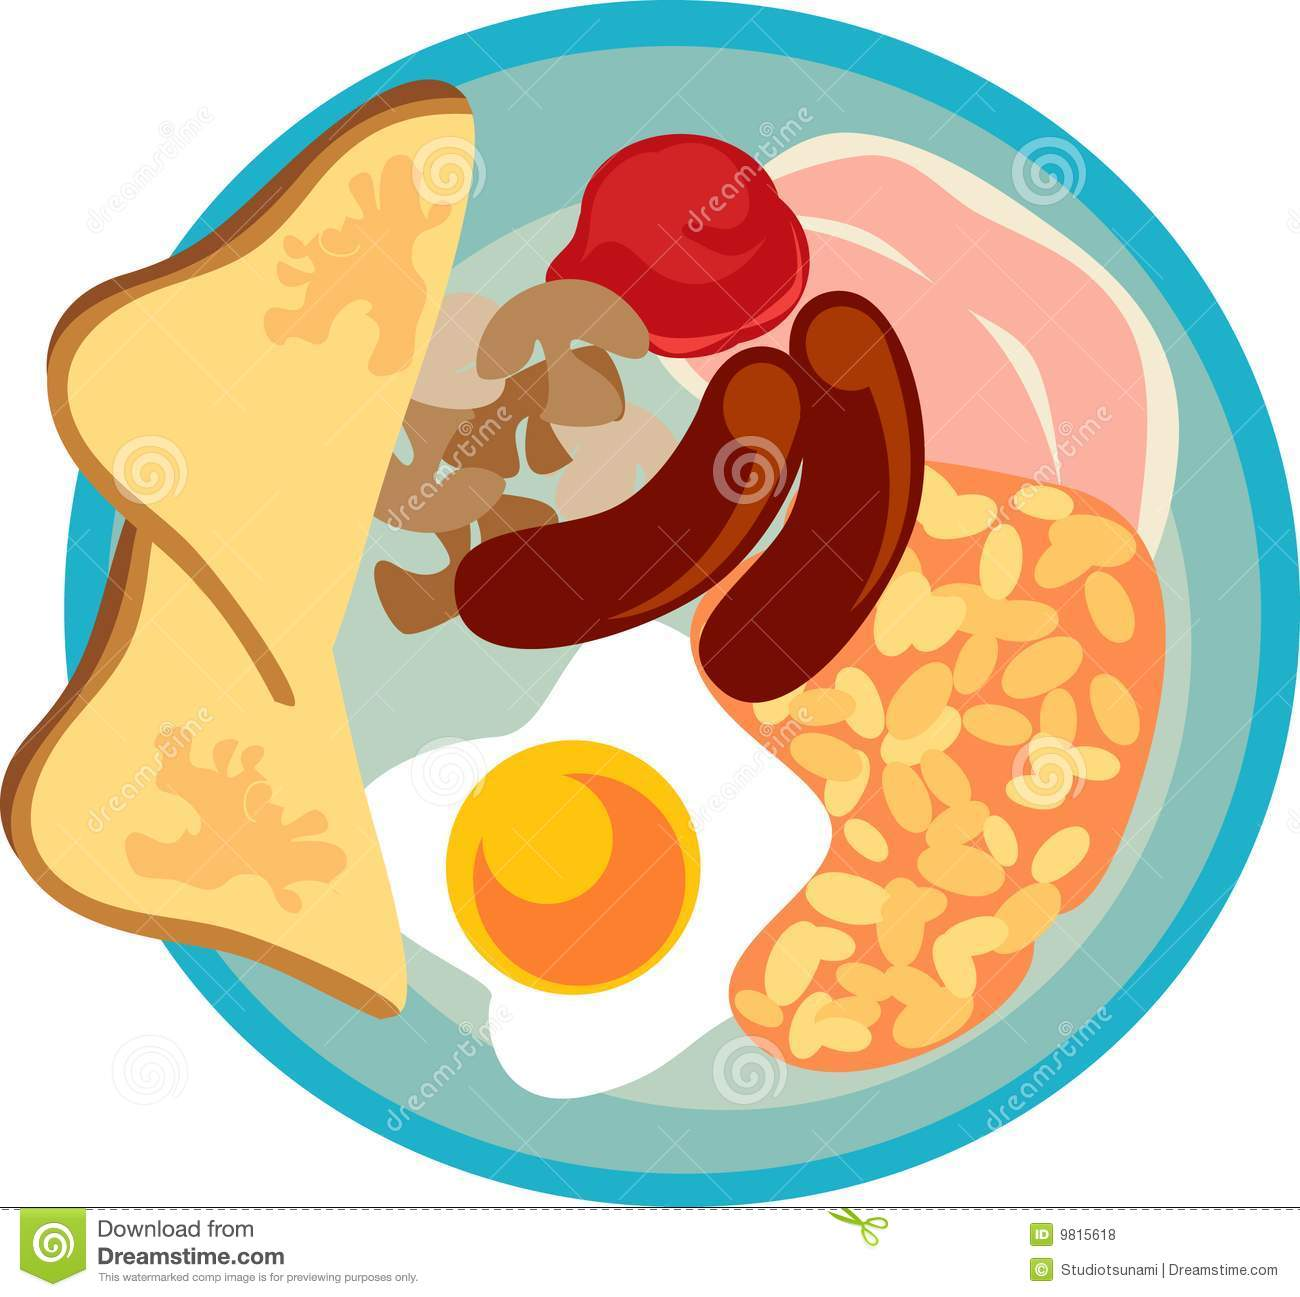 English Breakfast Royalty Free Stock Photos - Image: 9815618